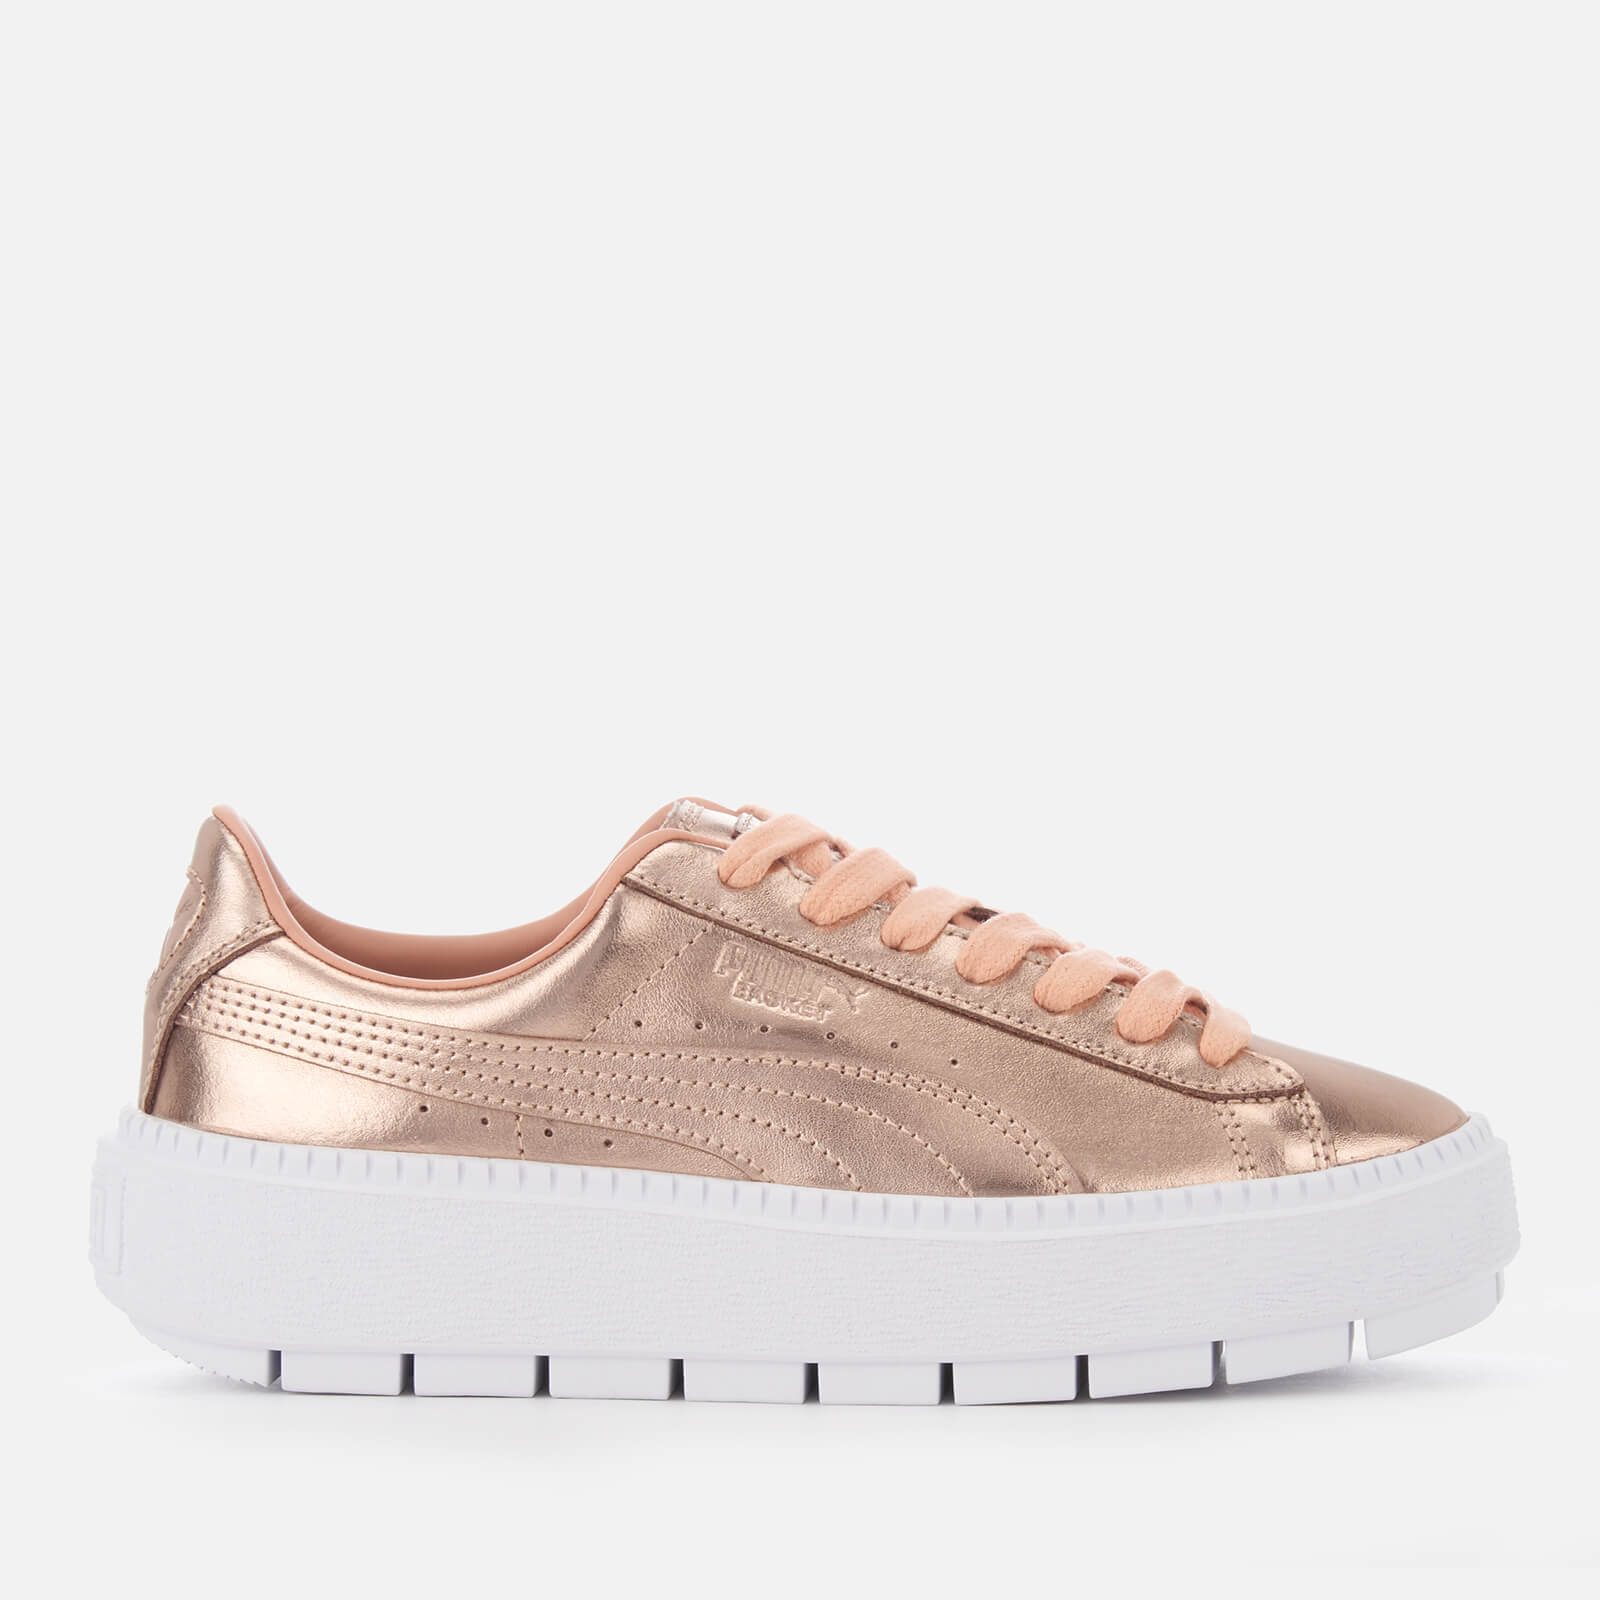 outlet store 7b9f3 fd873 Puma Women's Trace Basket Platform Trainers - Dusty Coral/Puma White